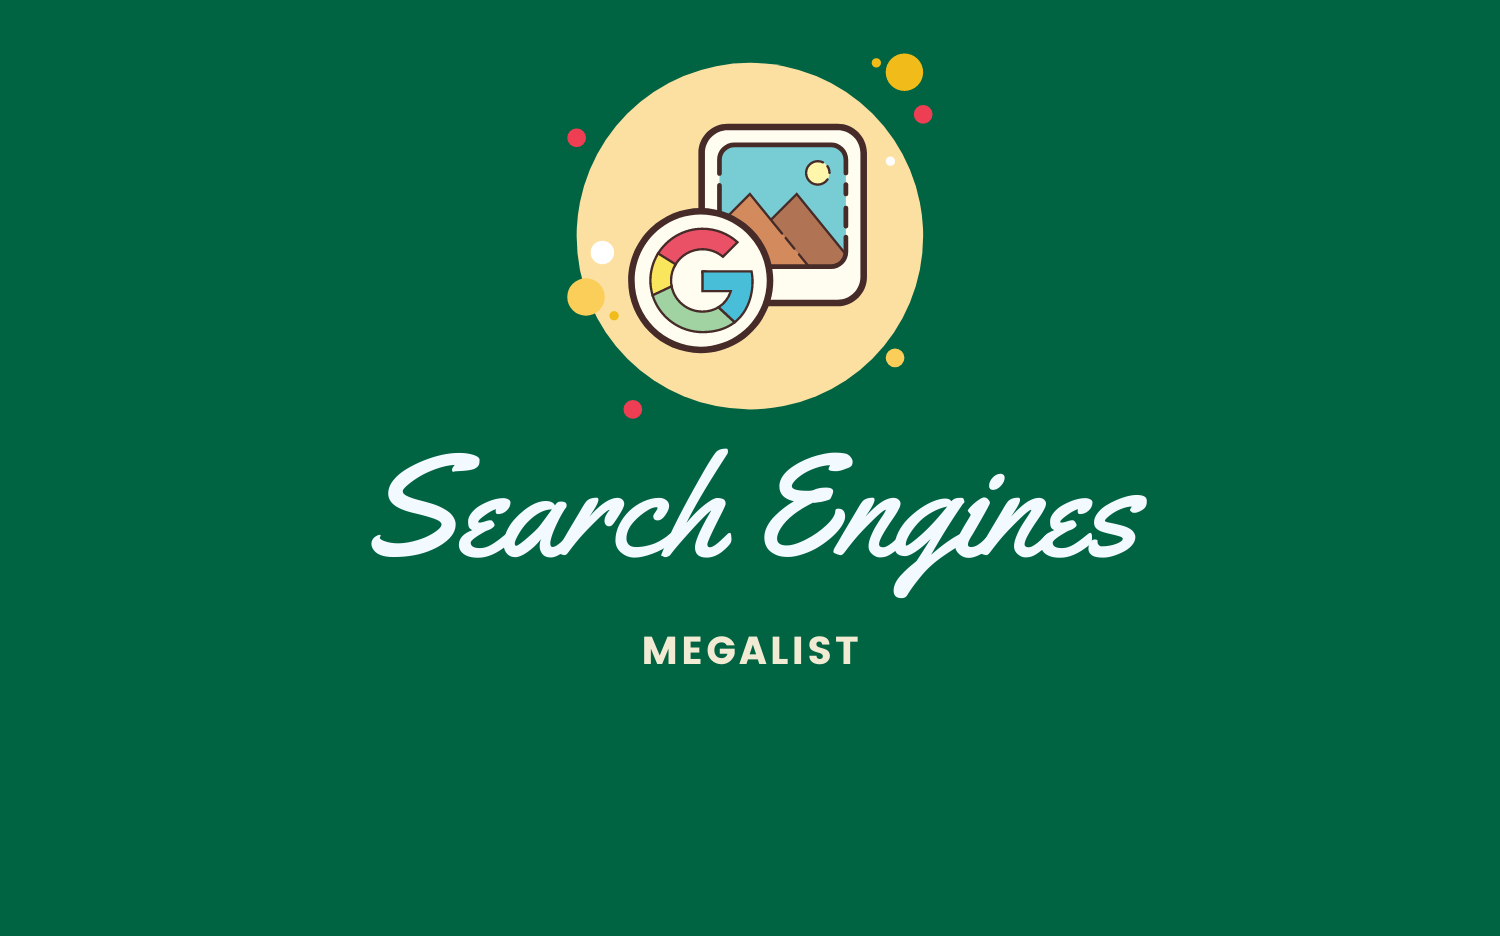 Search Engines Megalist